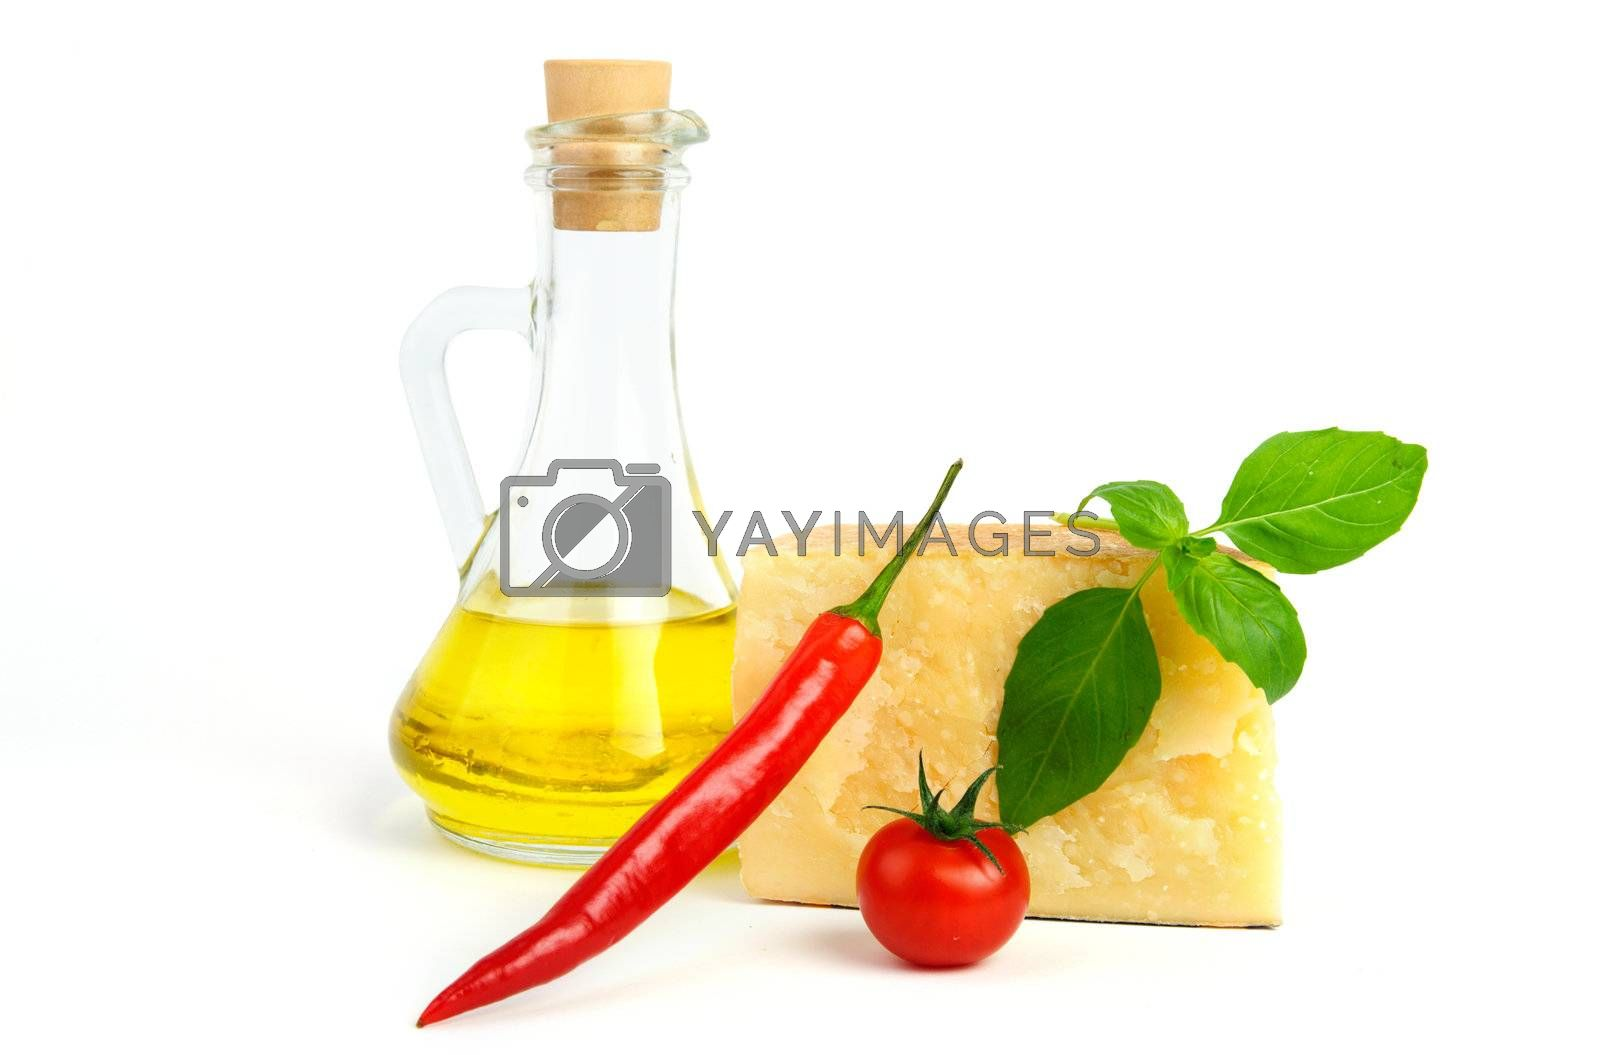 An image of bright food on white background